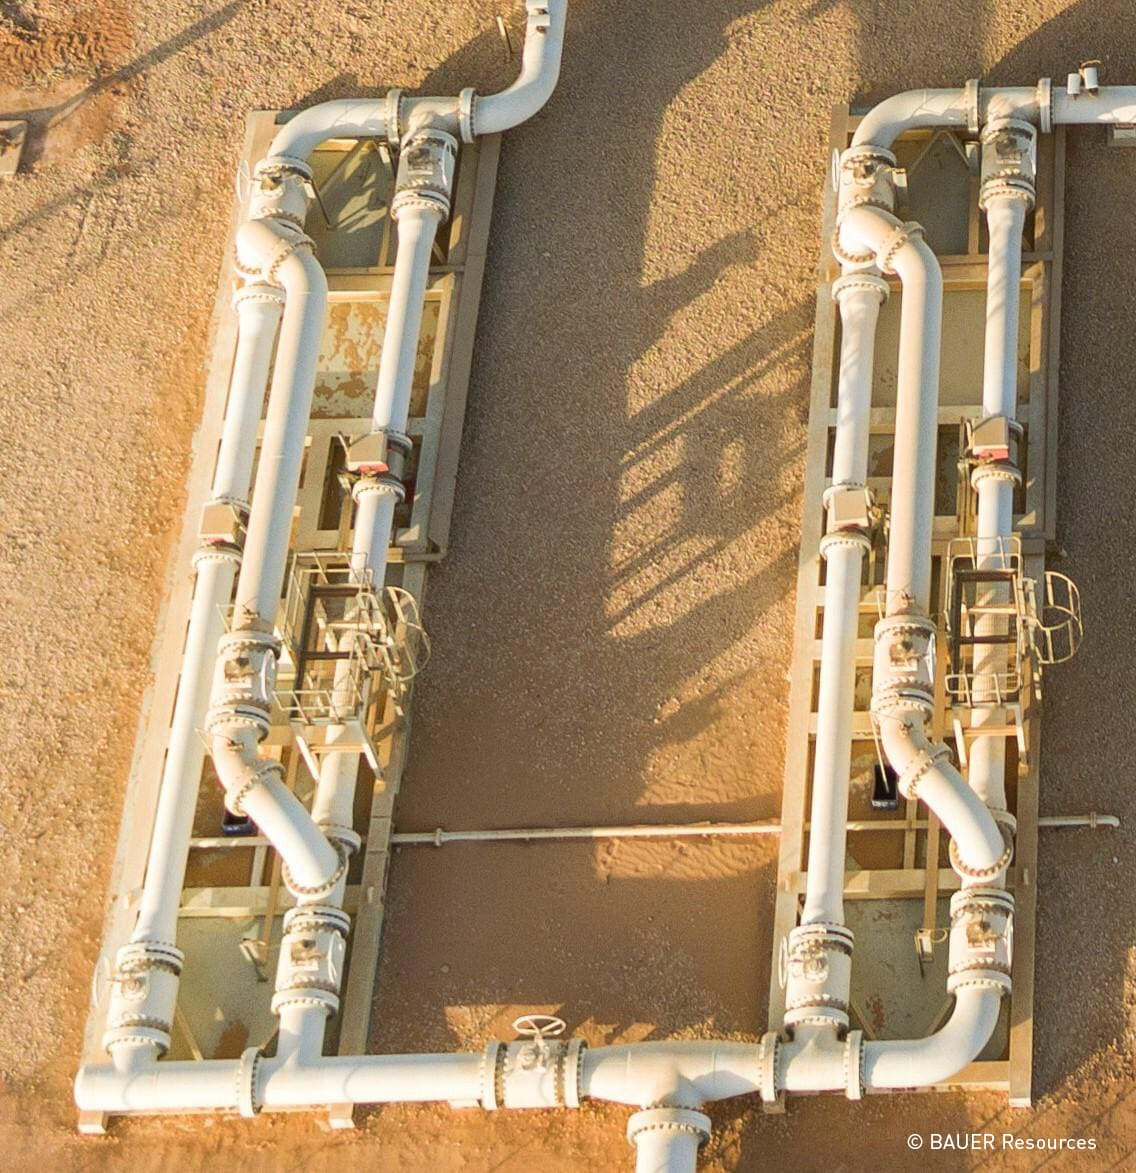 Two KROHNE water skids from above